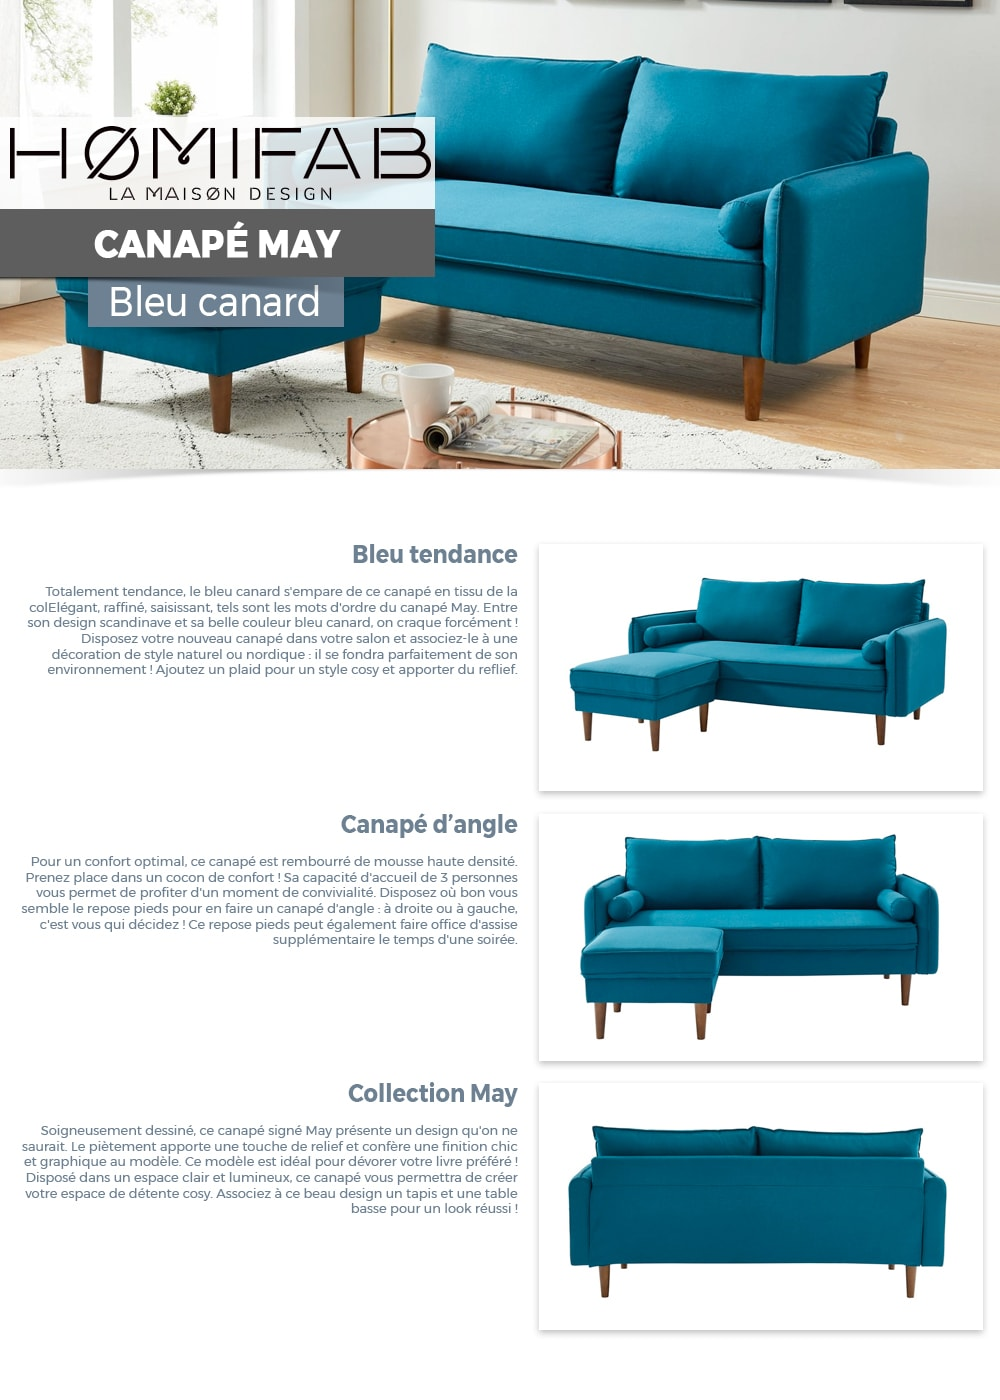 Canapé Darty Canapé D Angle Modulable 3 Places En Tissu Bleu Canard Collection May